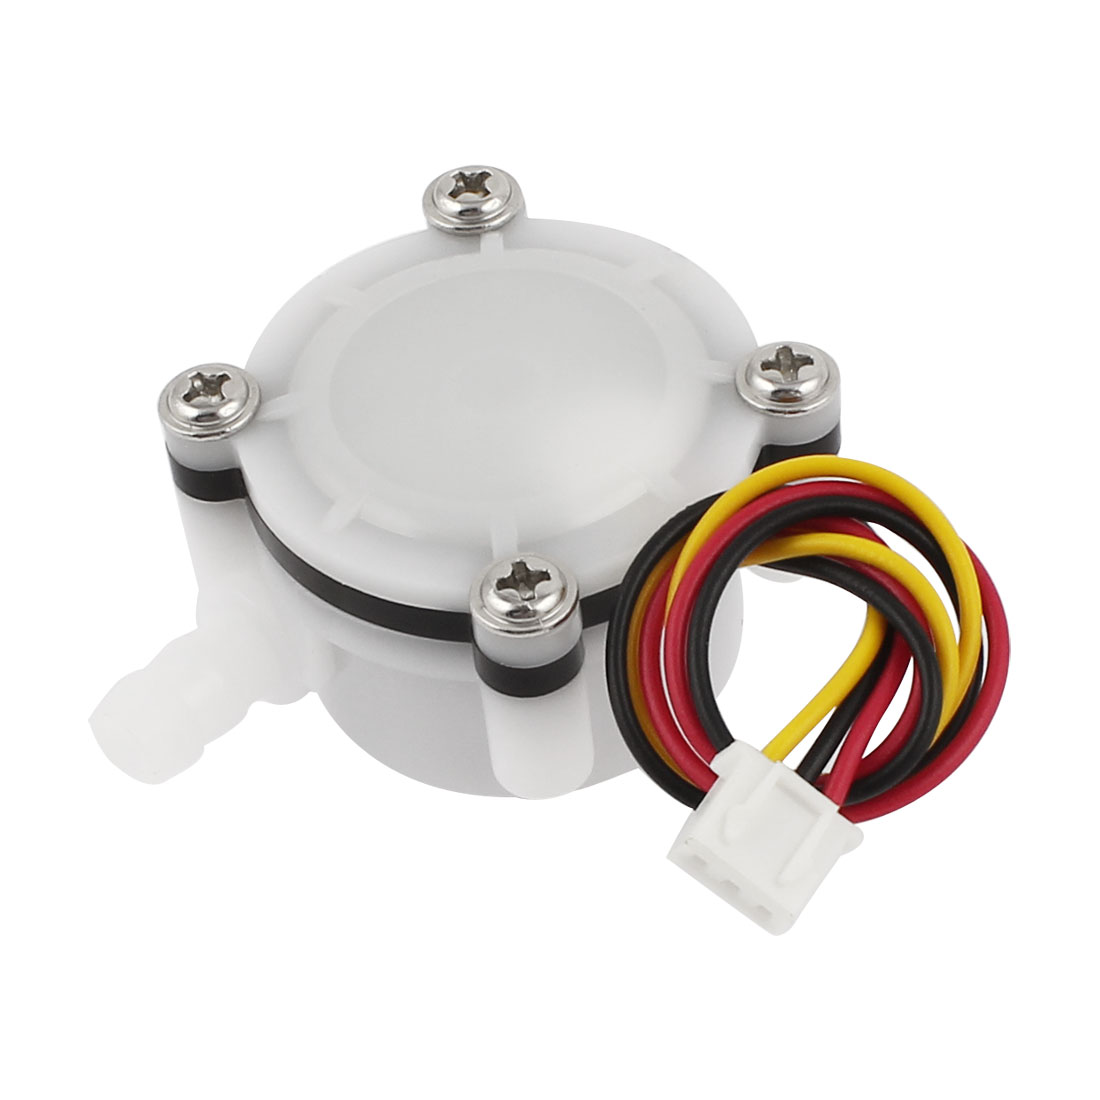 0.5-6L/min 0.8Mpa 6mm Connector Dia Water Flow Rate Sensor Flowmeter